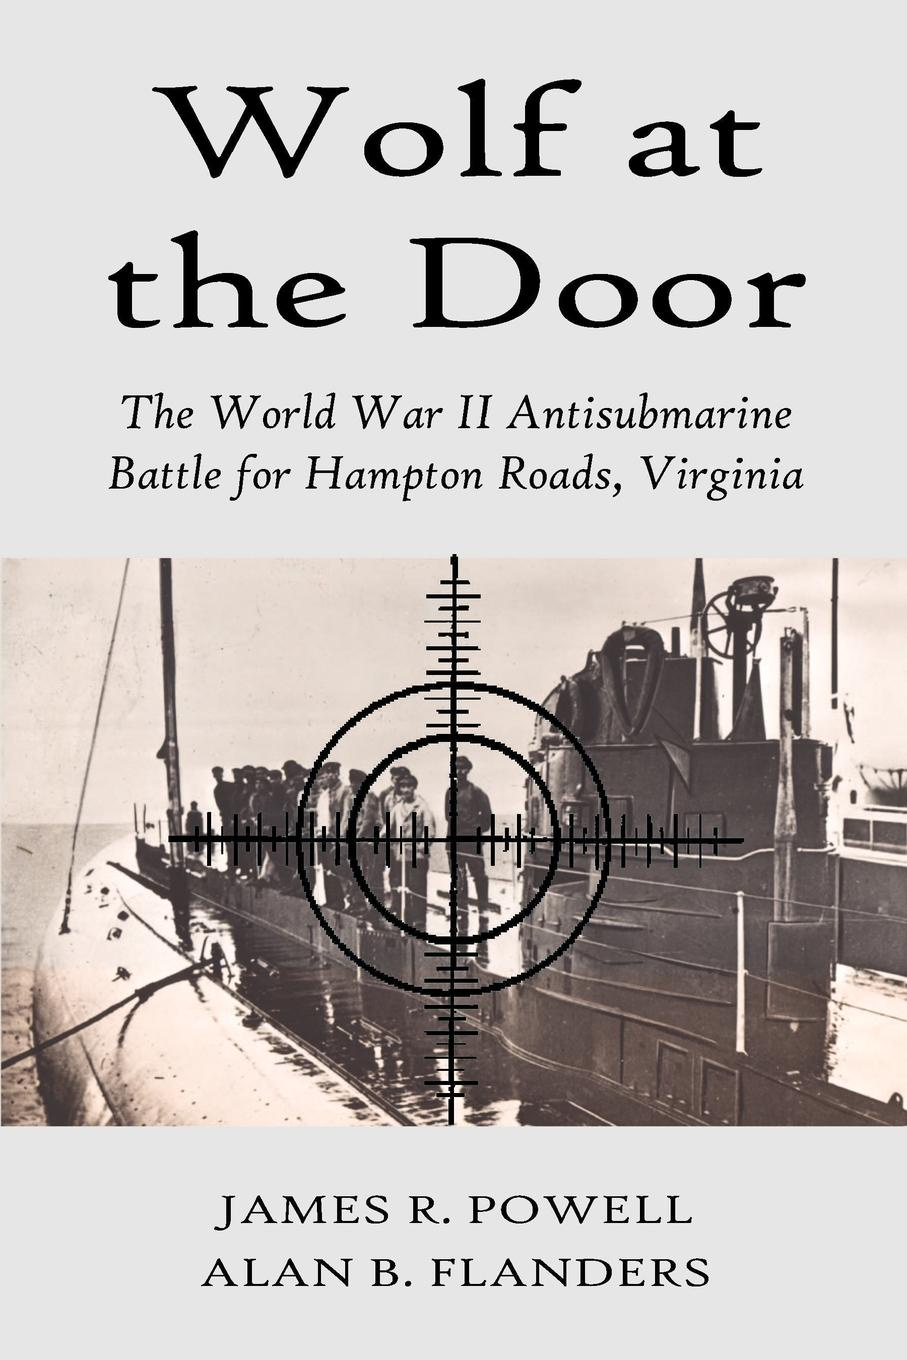 James R. Powell, Russ R. Powell, Alan B. Flanders Wolf at the Door. The World War II Antisubmarine Battle for Hampton Roads, Virginia george f campbell pat o brien war with the r f c two personal accounts of airmen during the first world war 1914 18